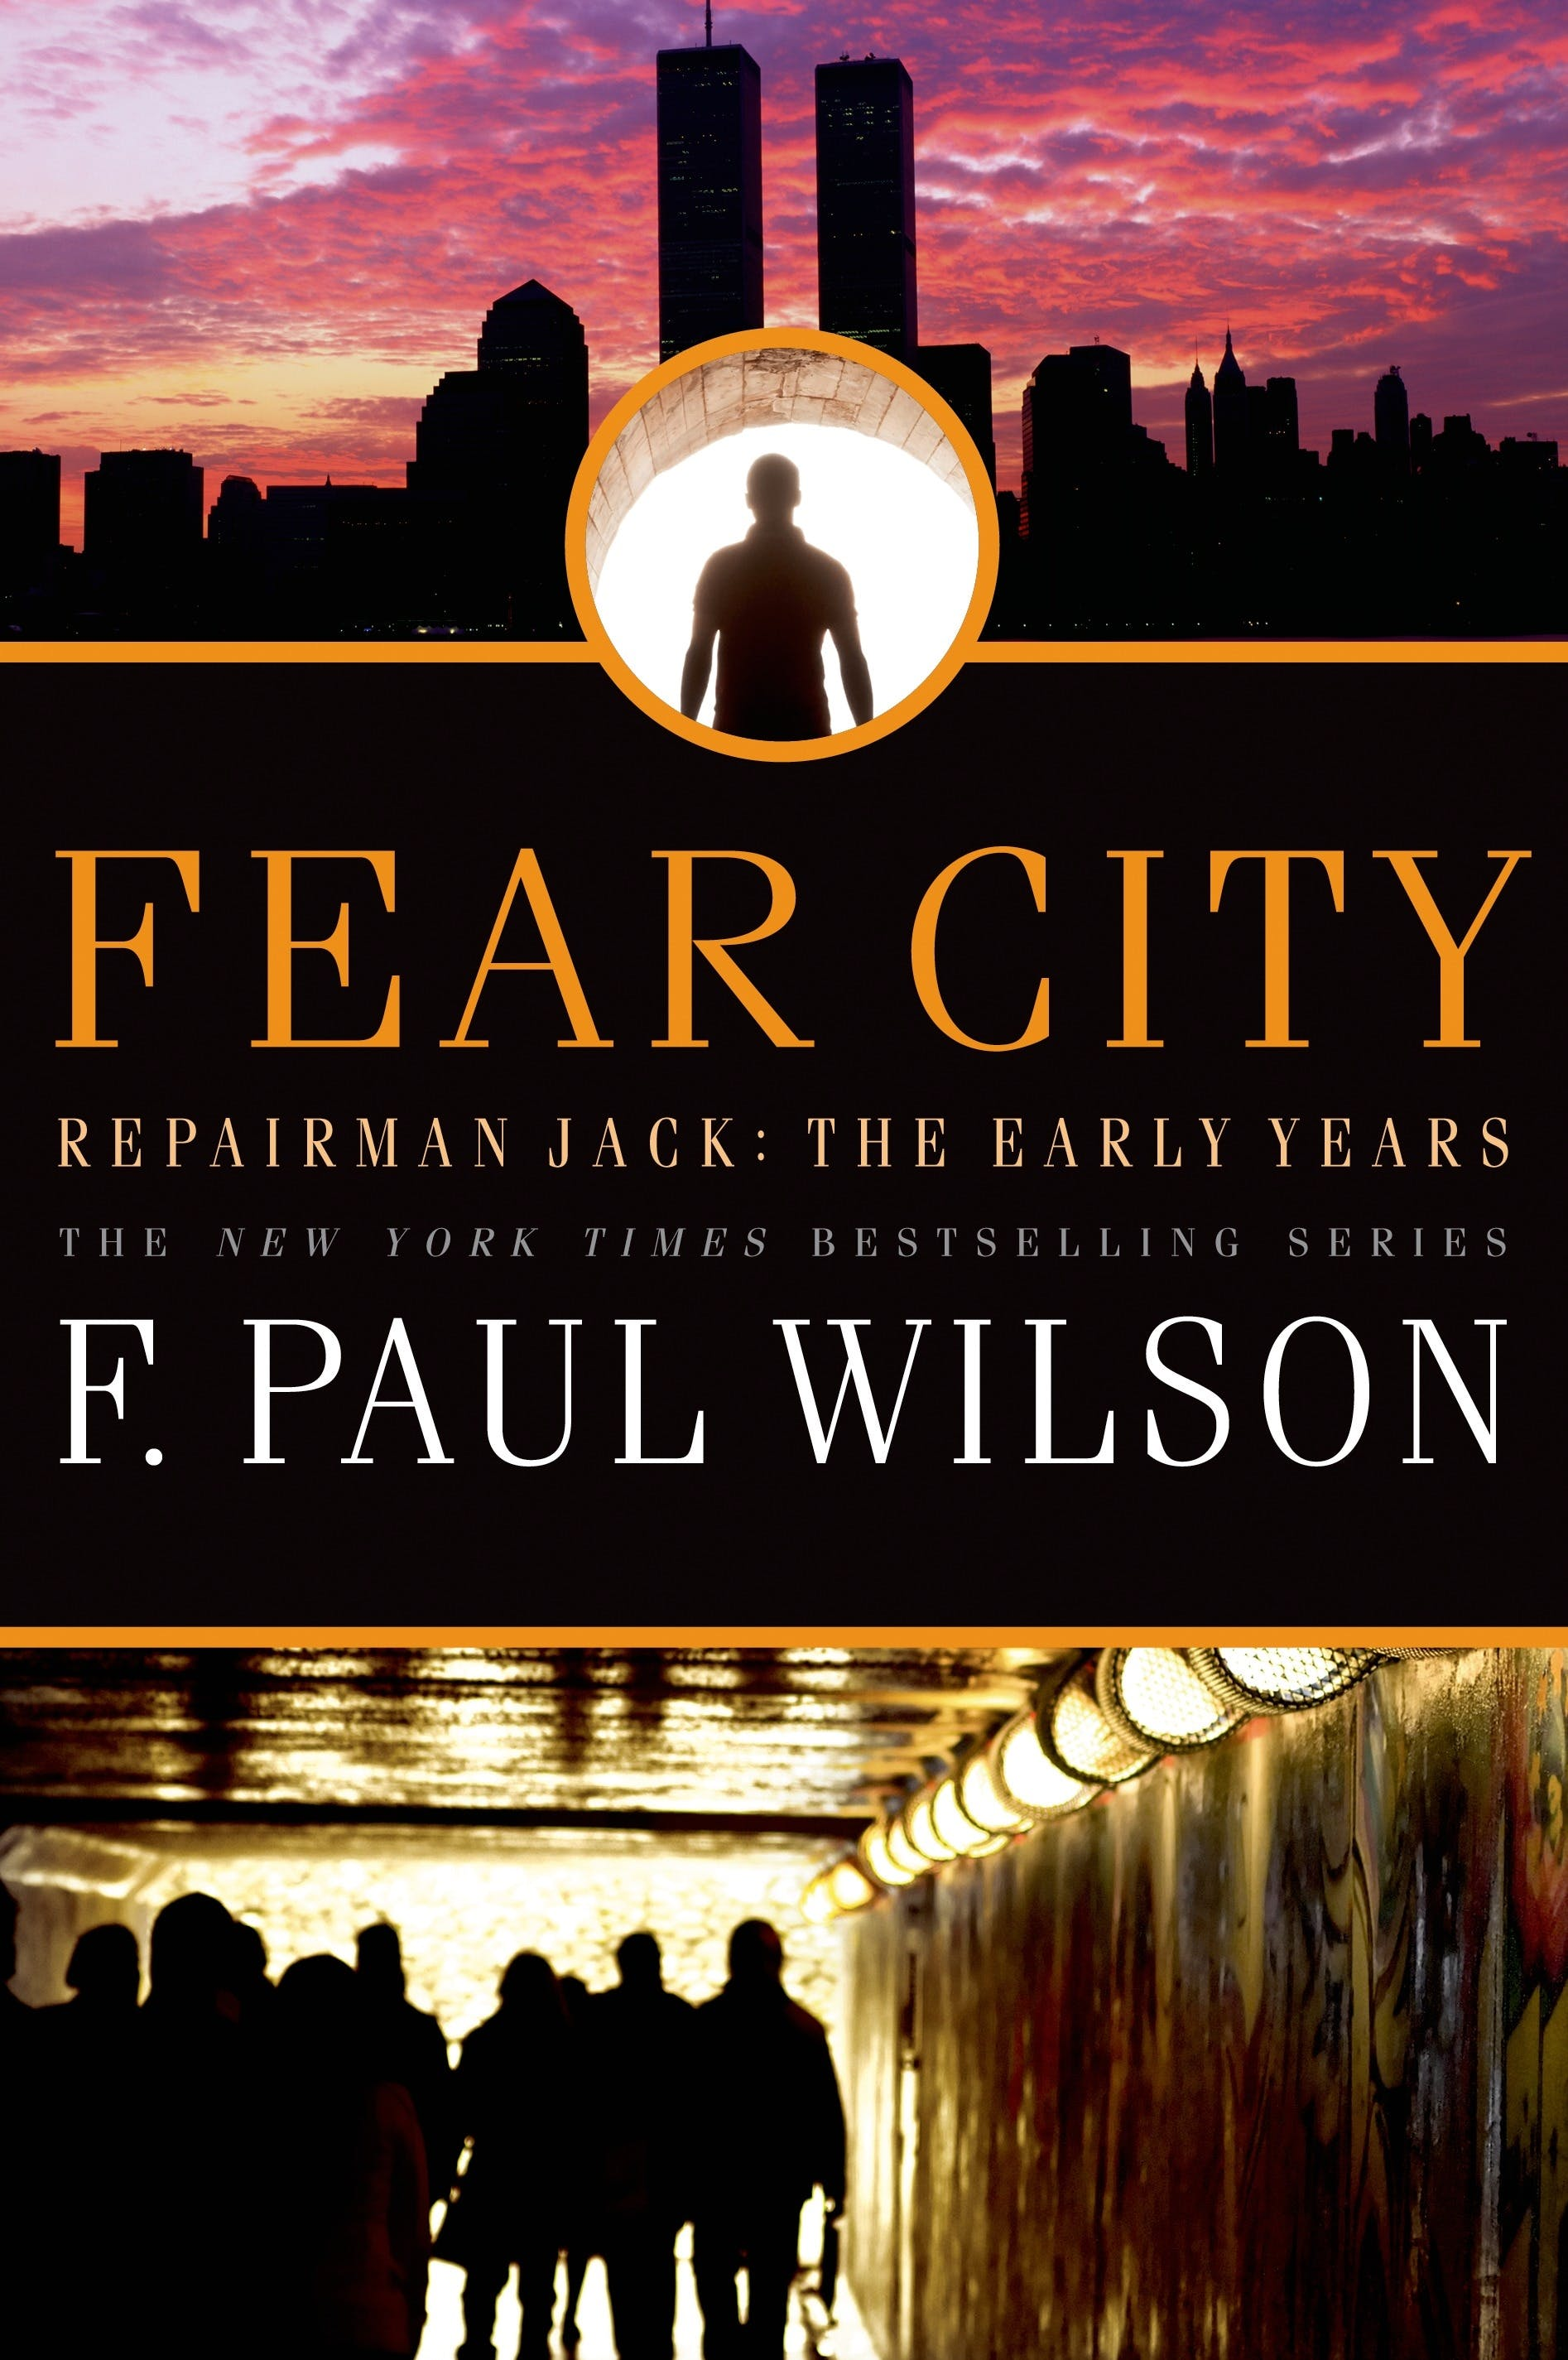 Image of Fear City